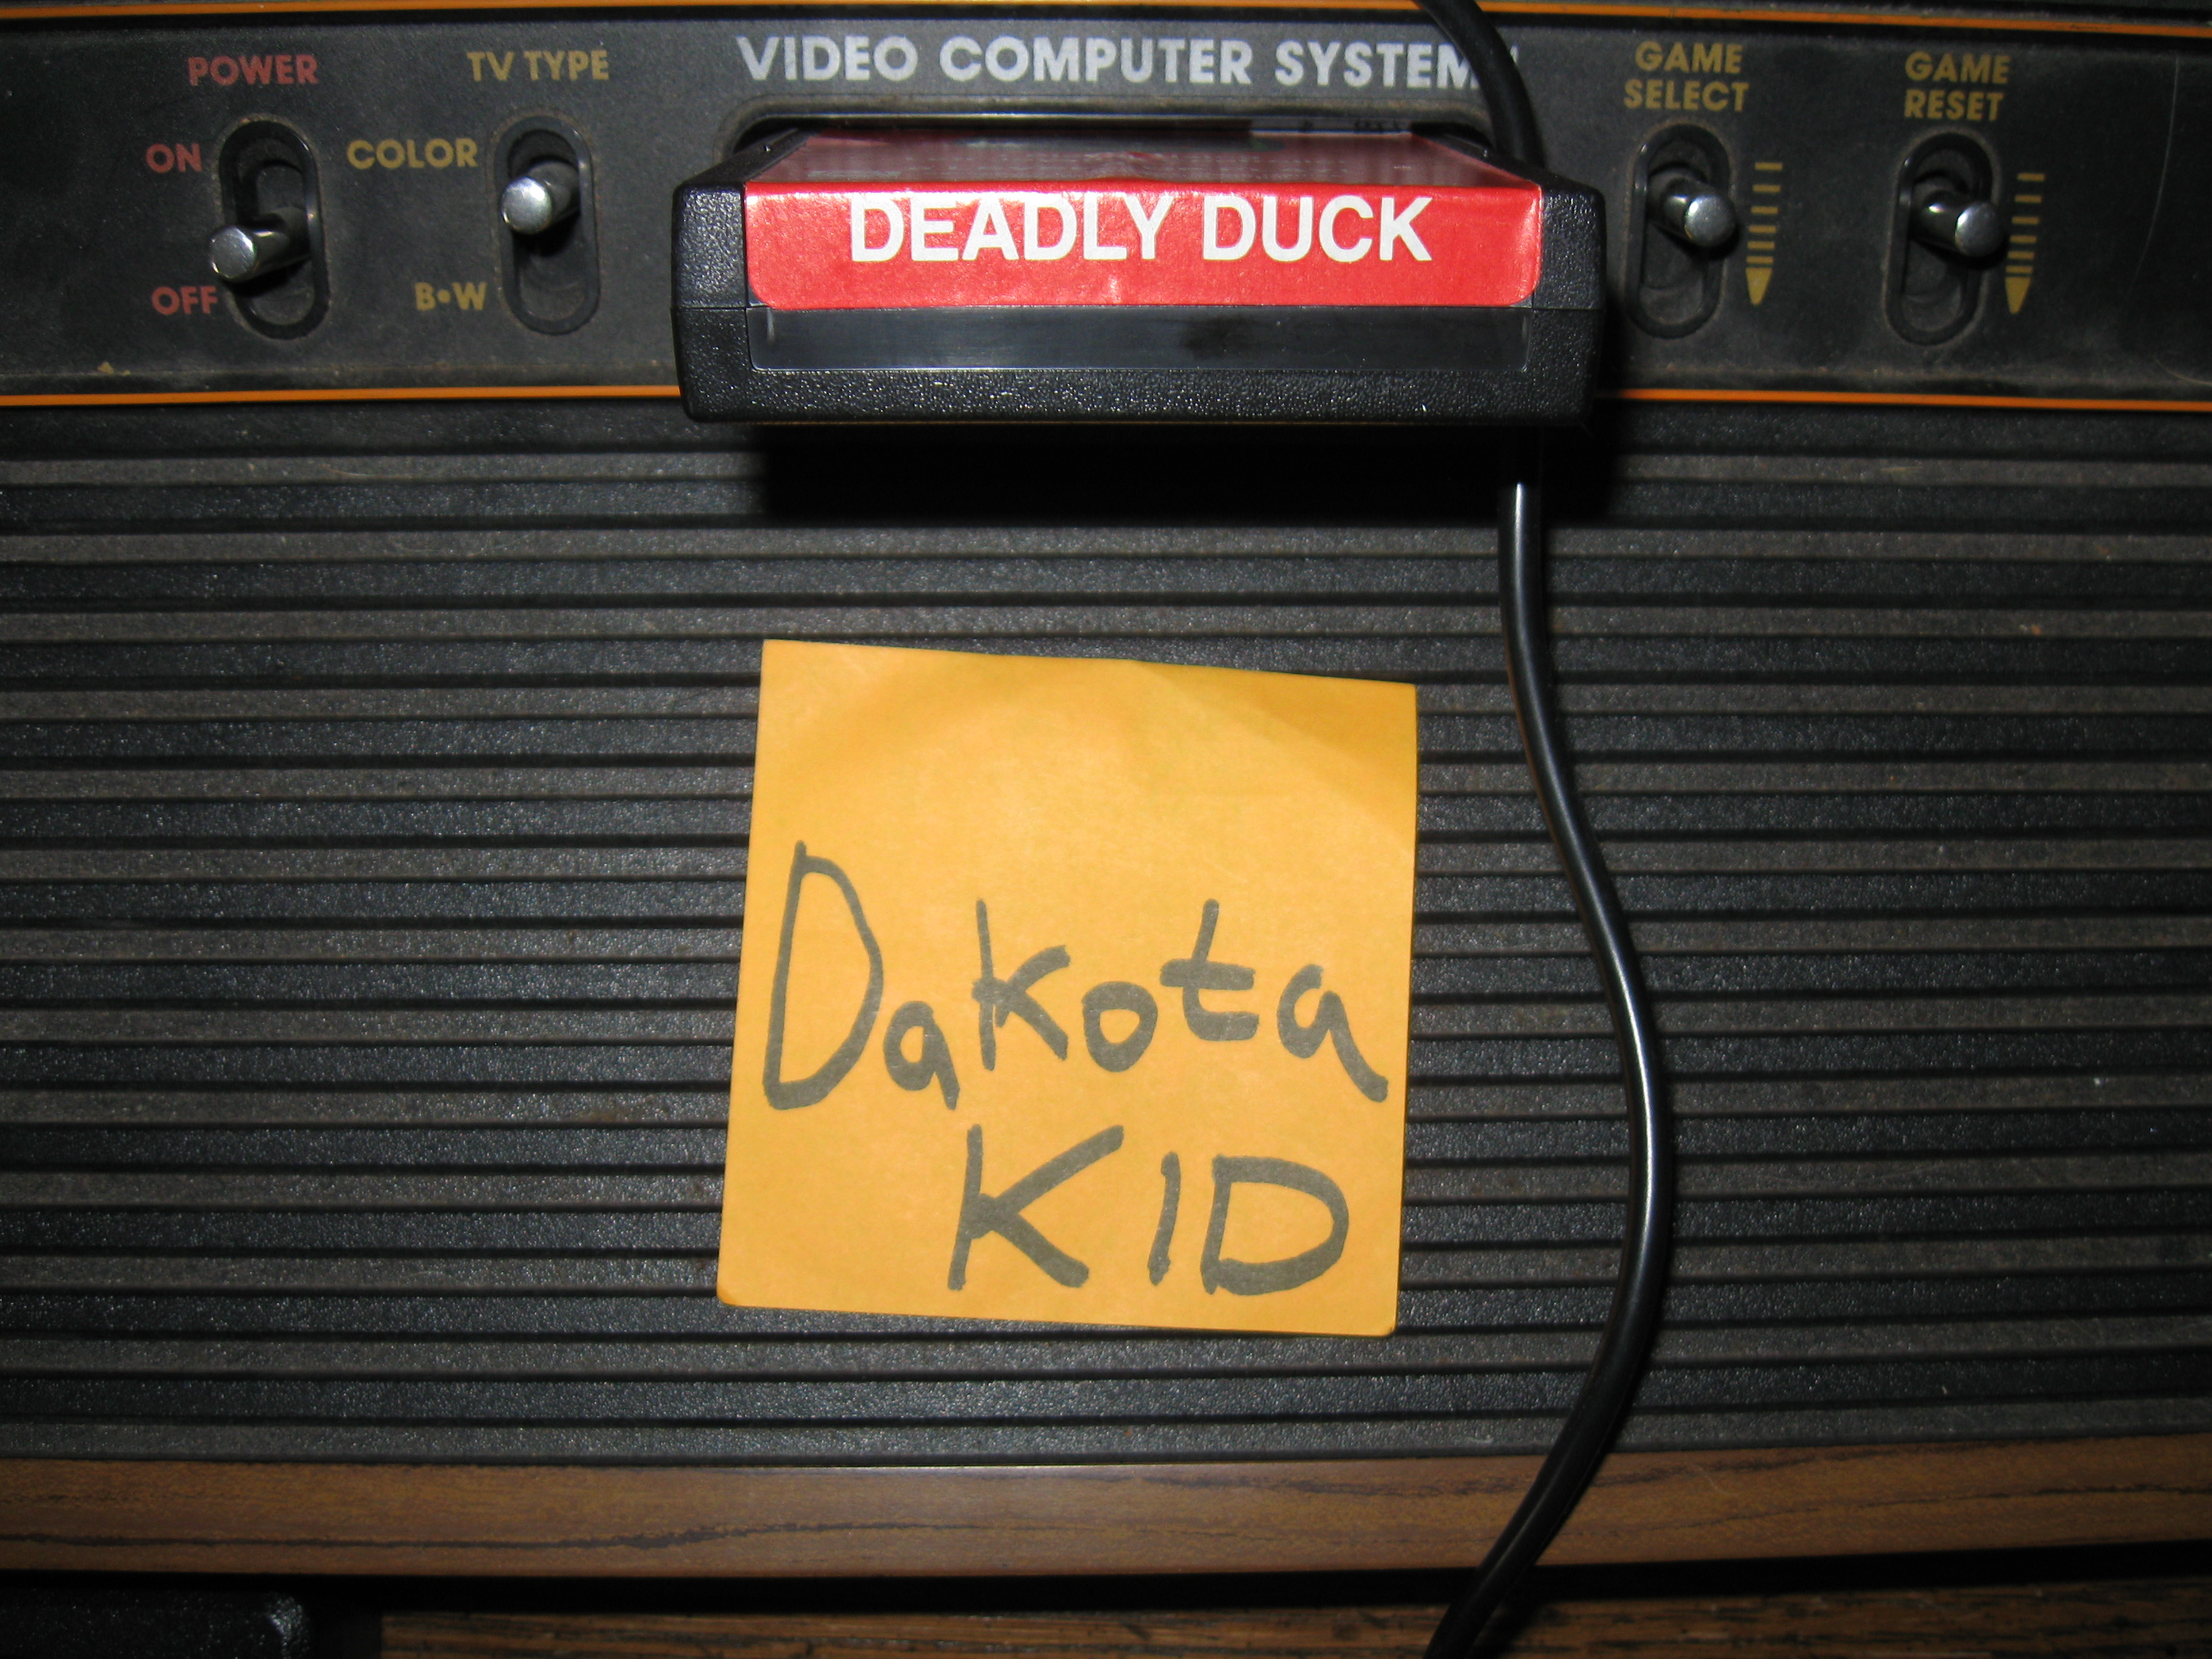 DakotaKid: Deadly Duck (Atari 2600 Novice/B) 31,460 points on 2016-02-22 14:22:11